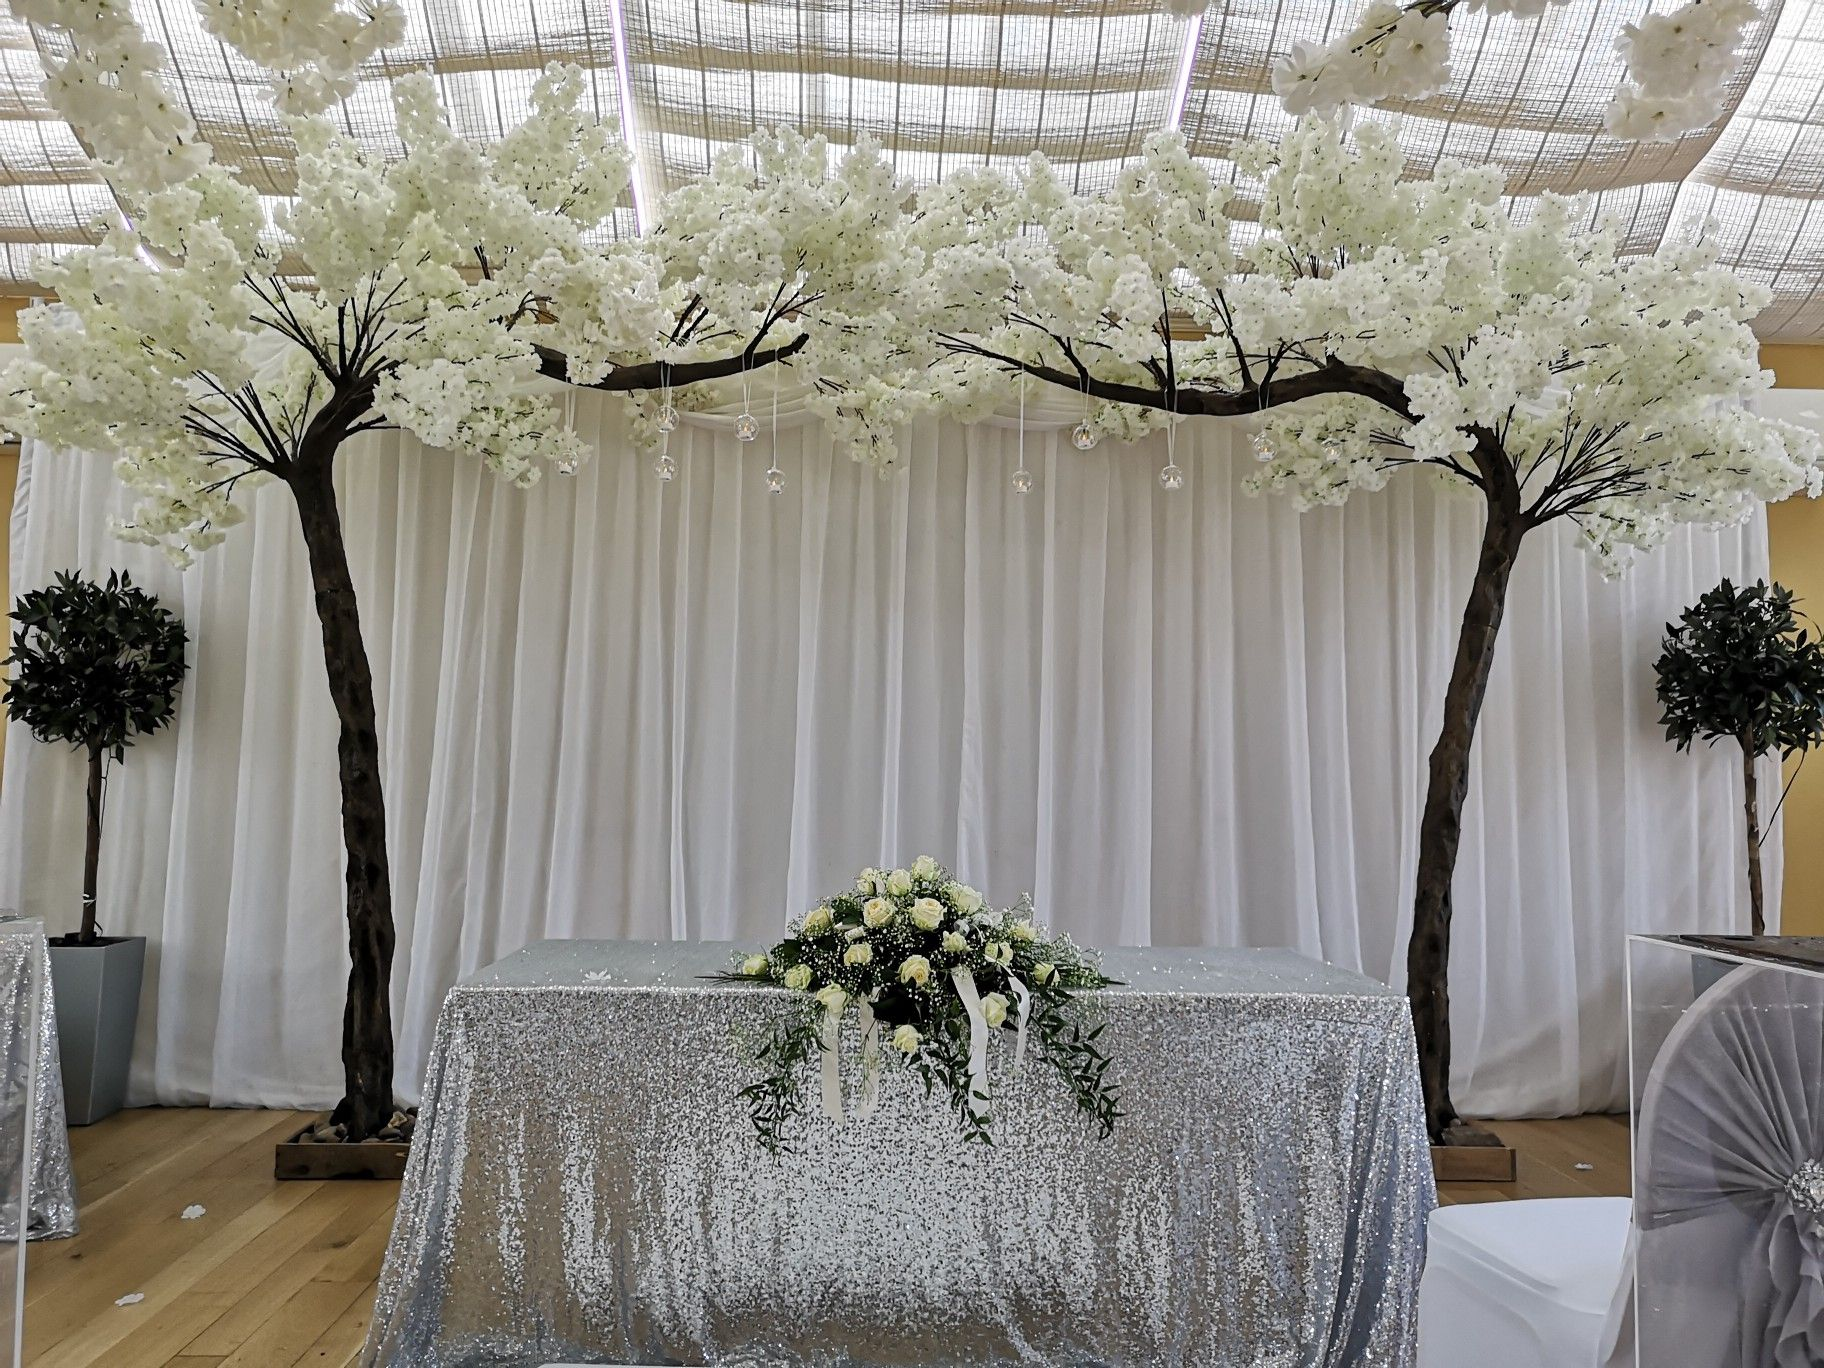 White Blossom Canopy Trees With Glass Hanging Baubles In 2021 Tree Canopy Blossom Trees Statement Decor